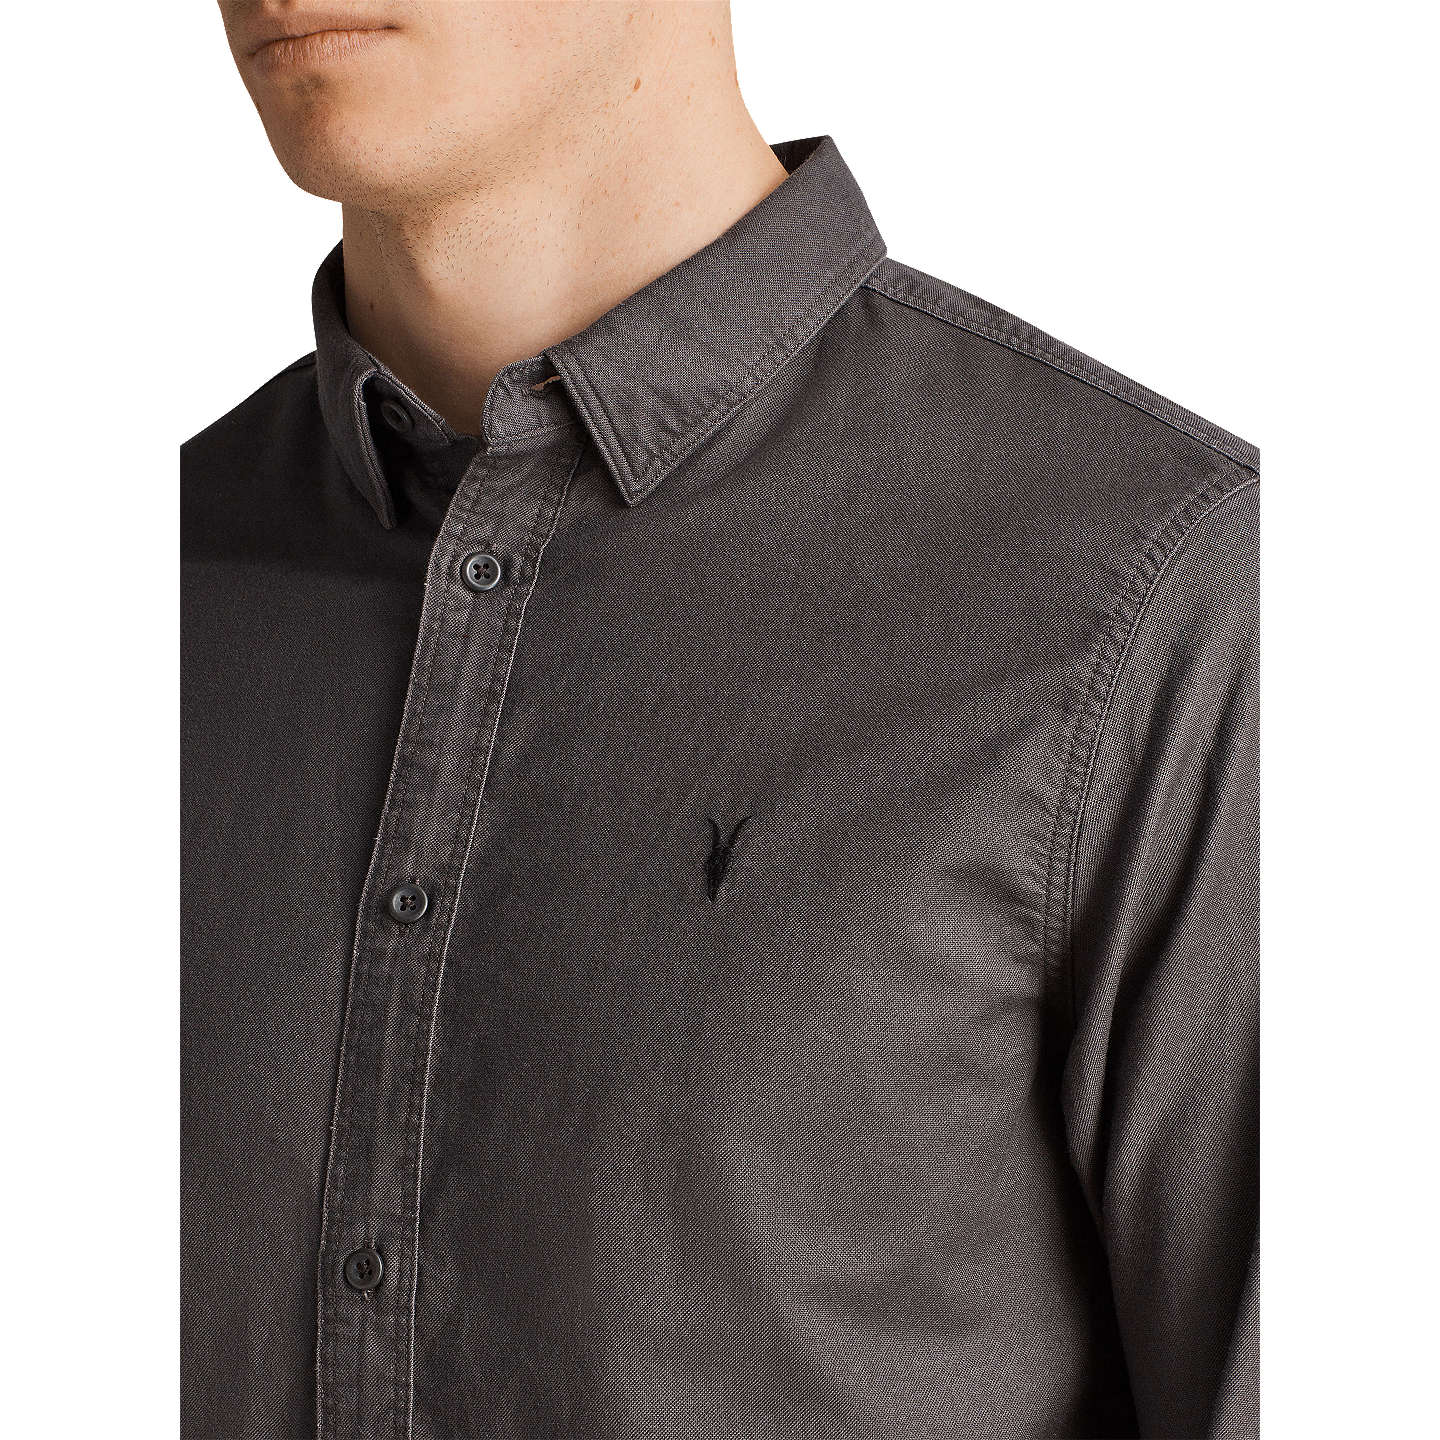 BuyAllSaints Hungtingdon Slim Fit Shirt, Heath Grey, XS Online at johnlewis.com